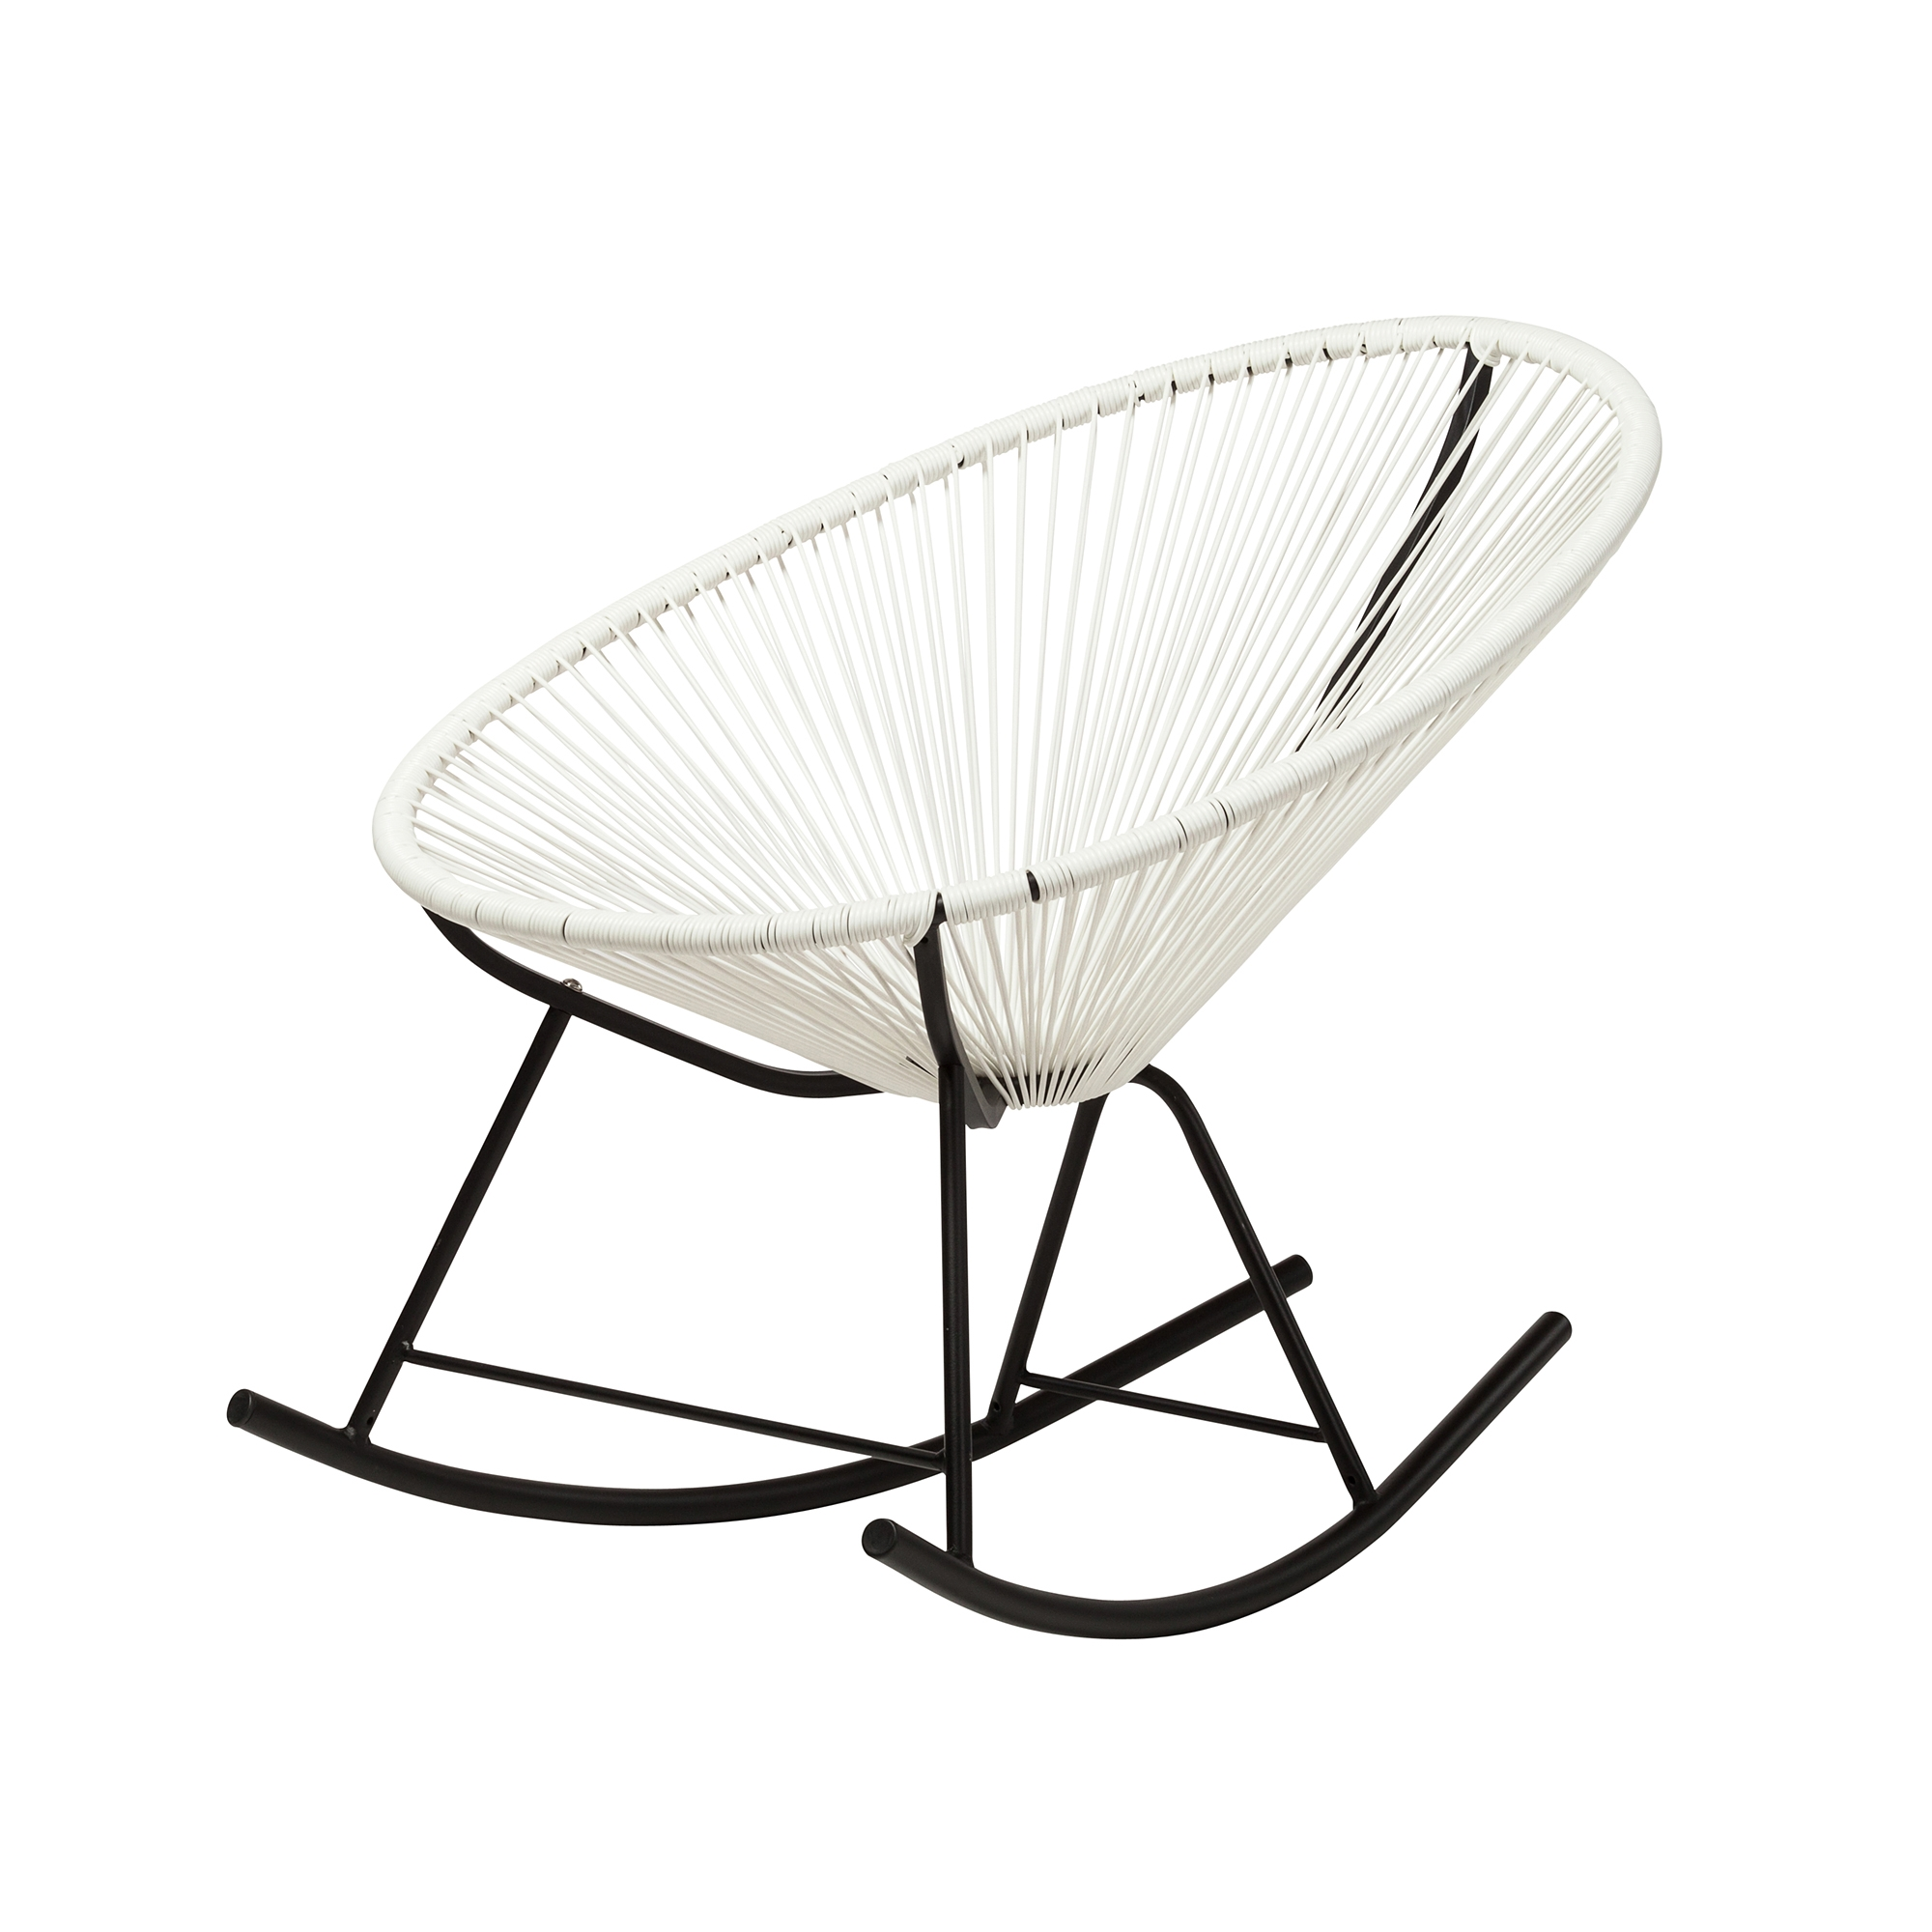 Acapulco Outdoor Rocking Chair White, The Khazana Austin Furniture